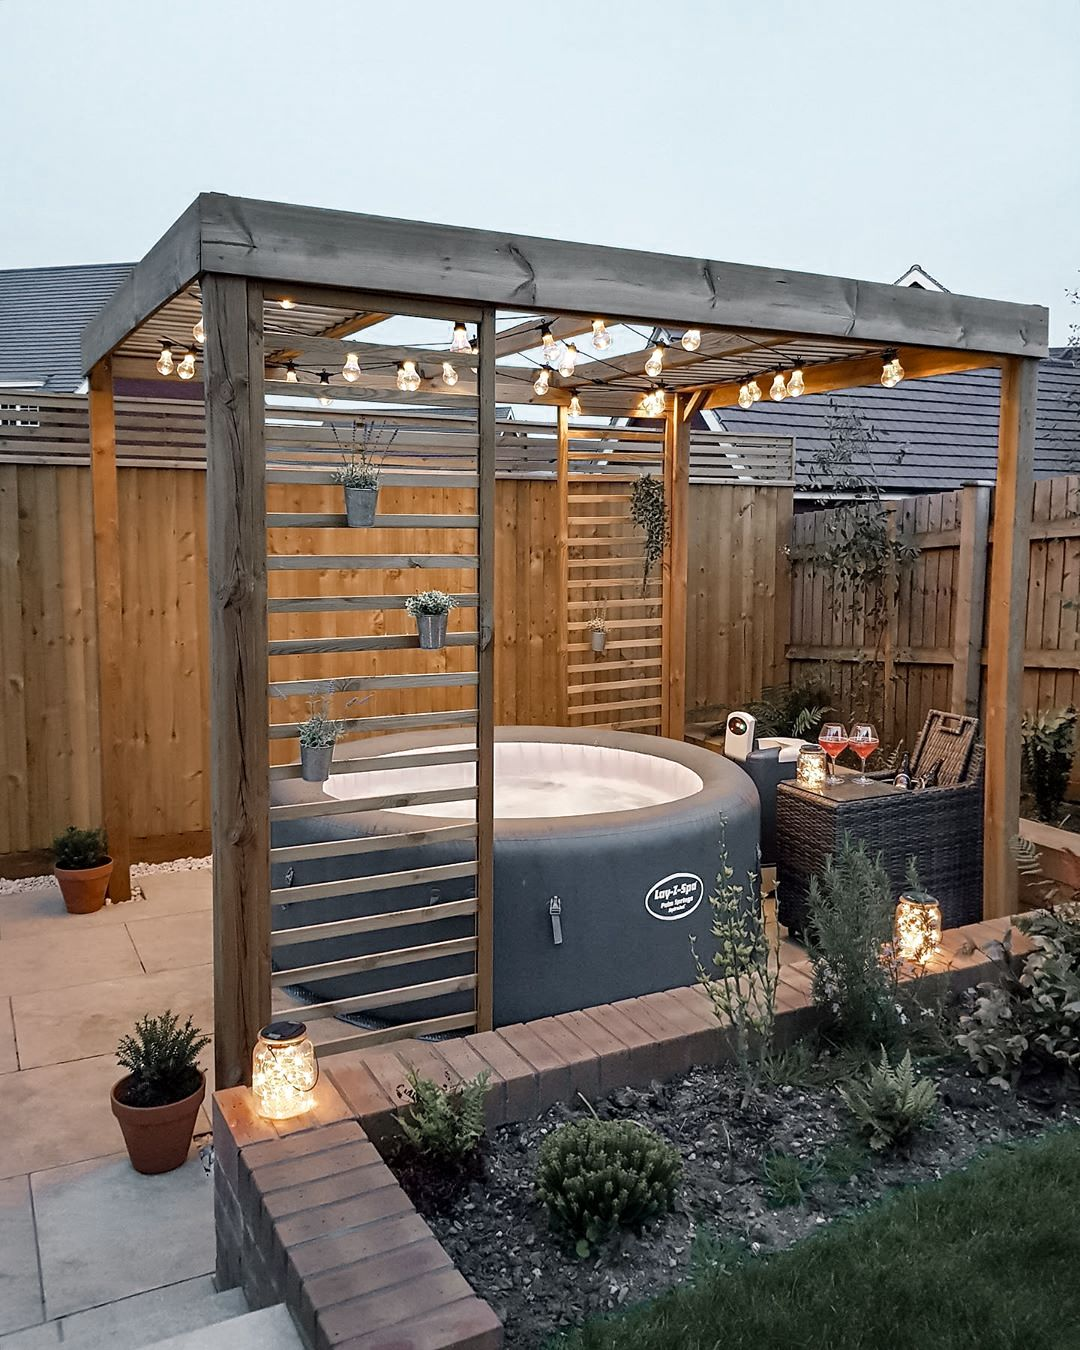 56 Ideas To Turn A Small Patio Into A Relaxing Space Hot Tub Outdoor Hot Tub Patio Hot Tub Garden